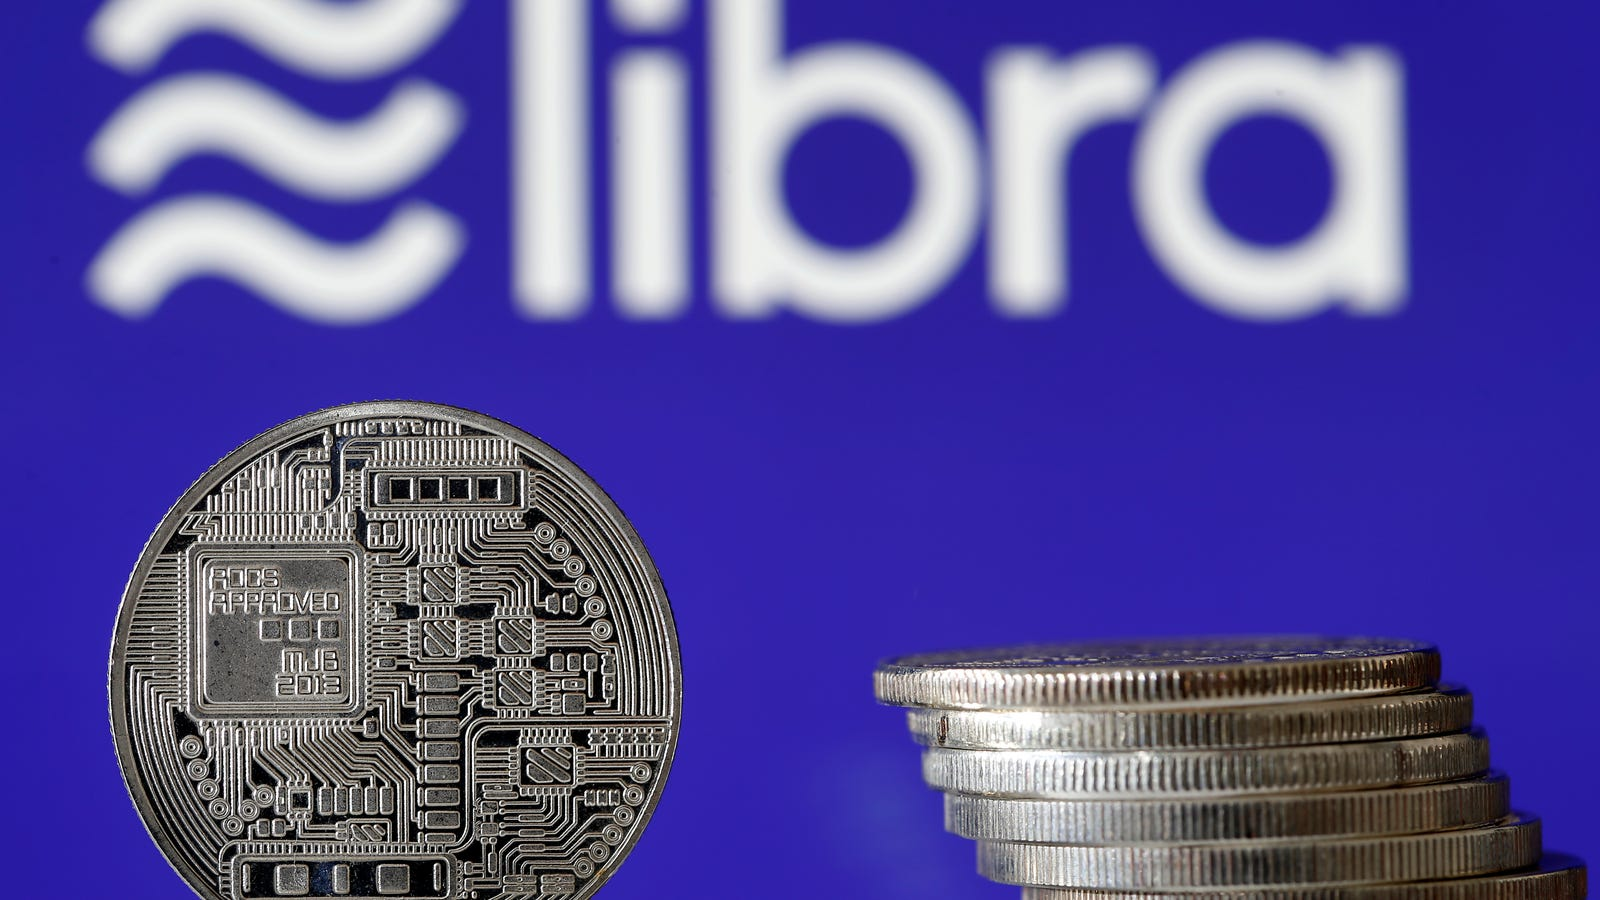 Facebook's New Libra Coin: How Does It Work, and Should You Buy It?